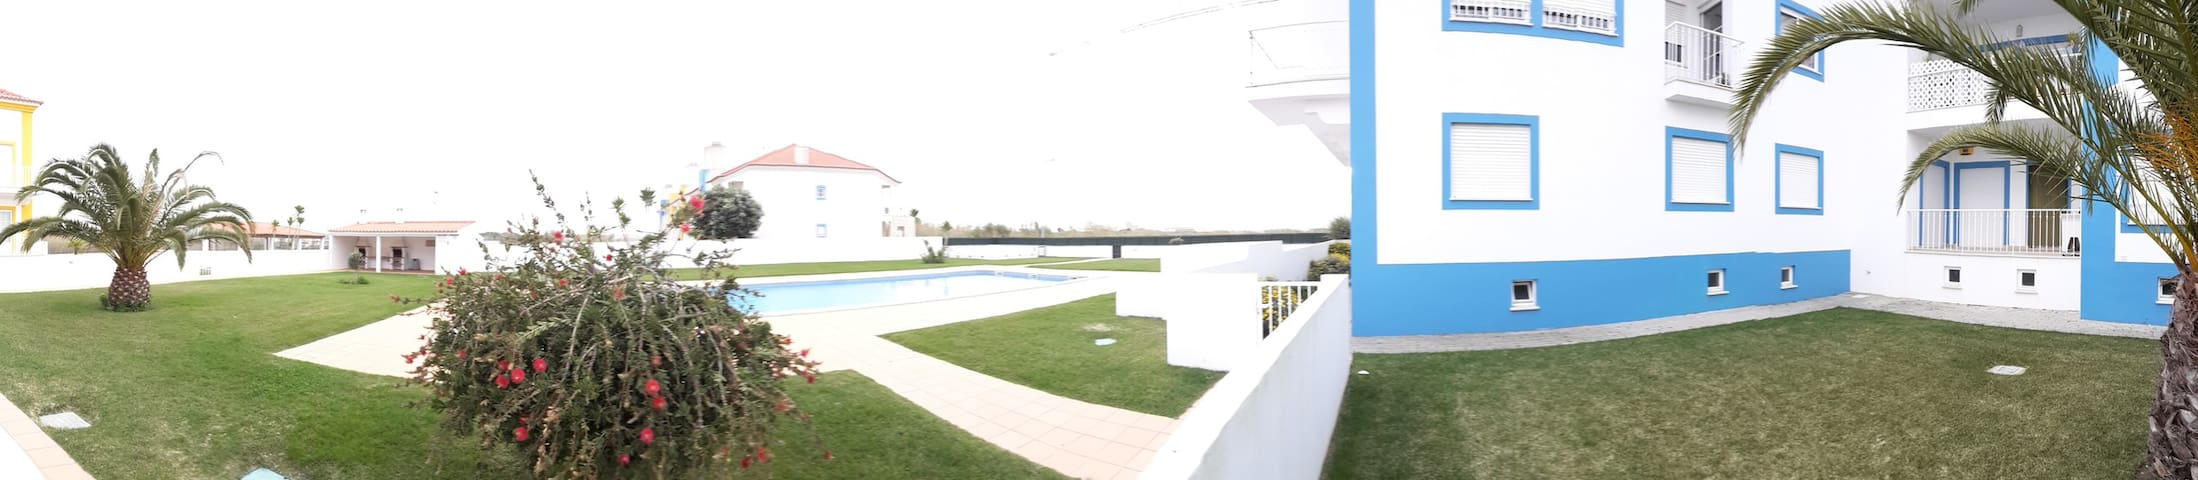 2R apartment w. pool and terrace central Baleal. - Ferrel - Wohnung